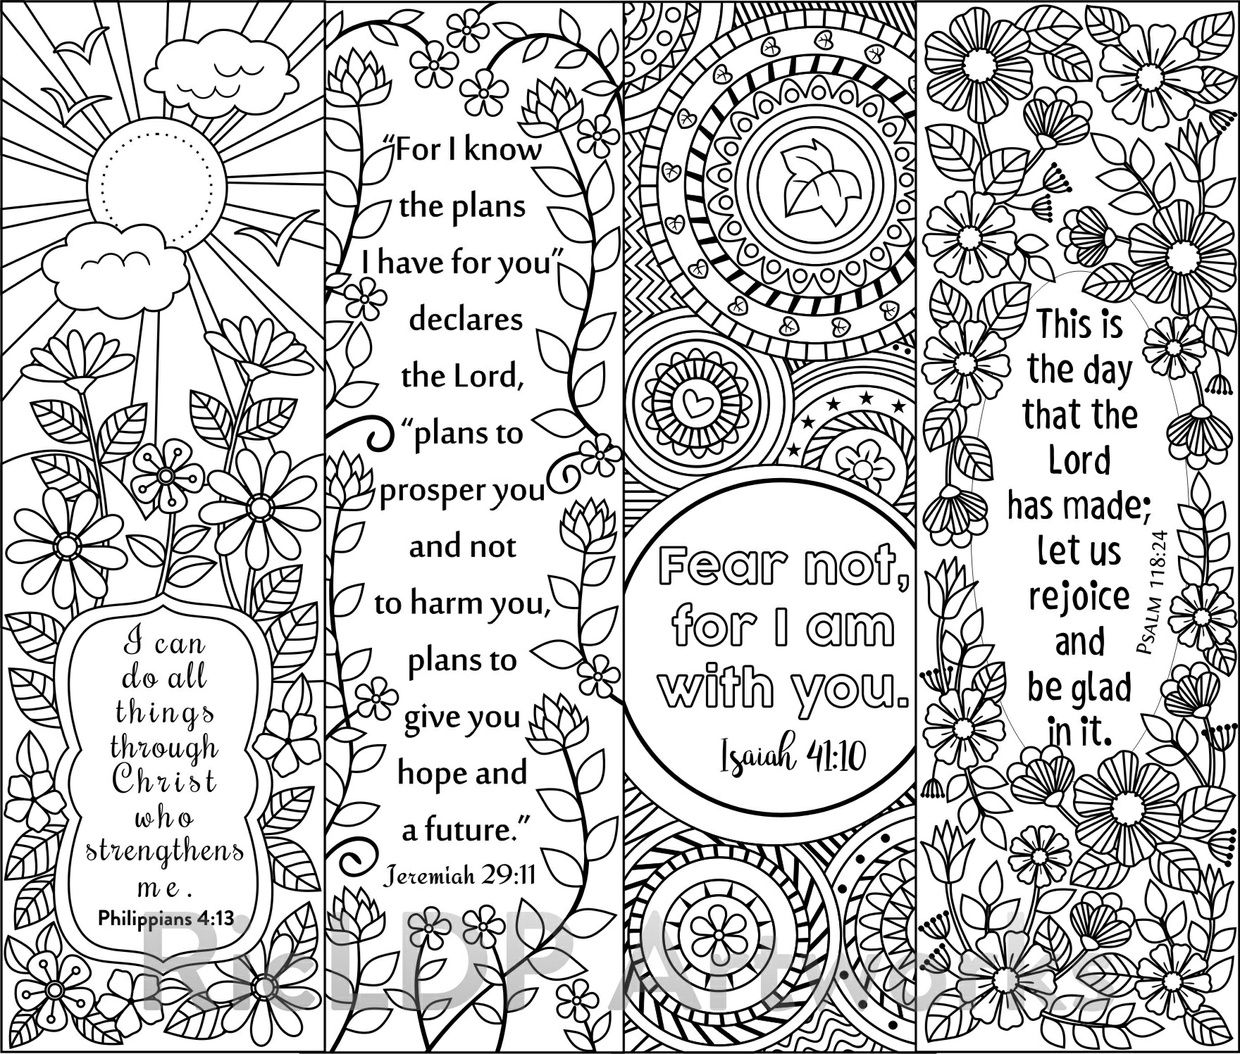 8 Bible Verse Coloring Bookmarks | Bookmarks, Bible and Journaling